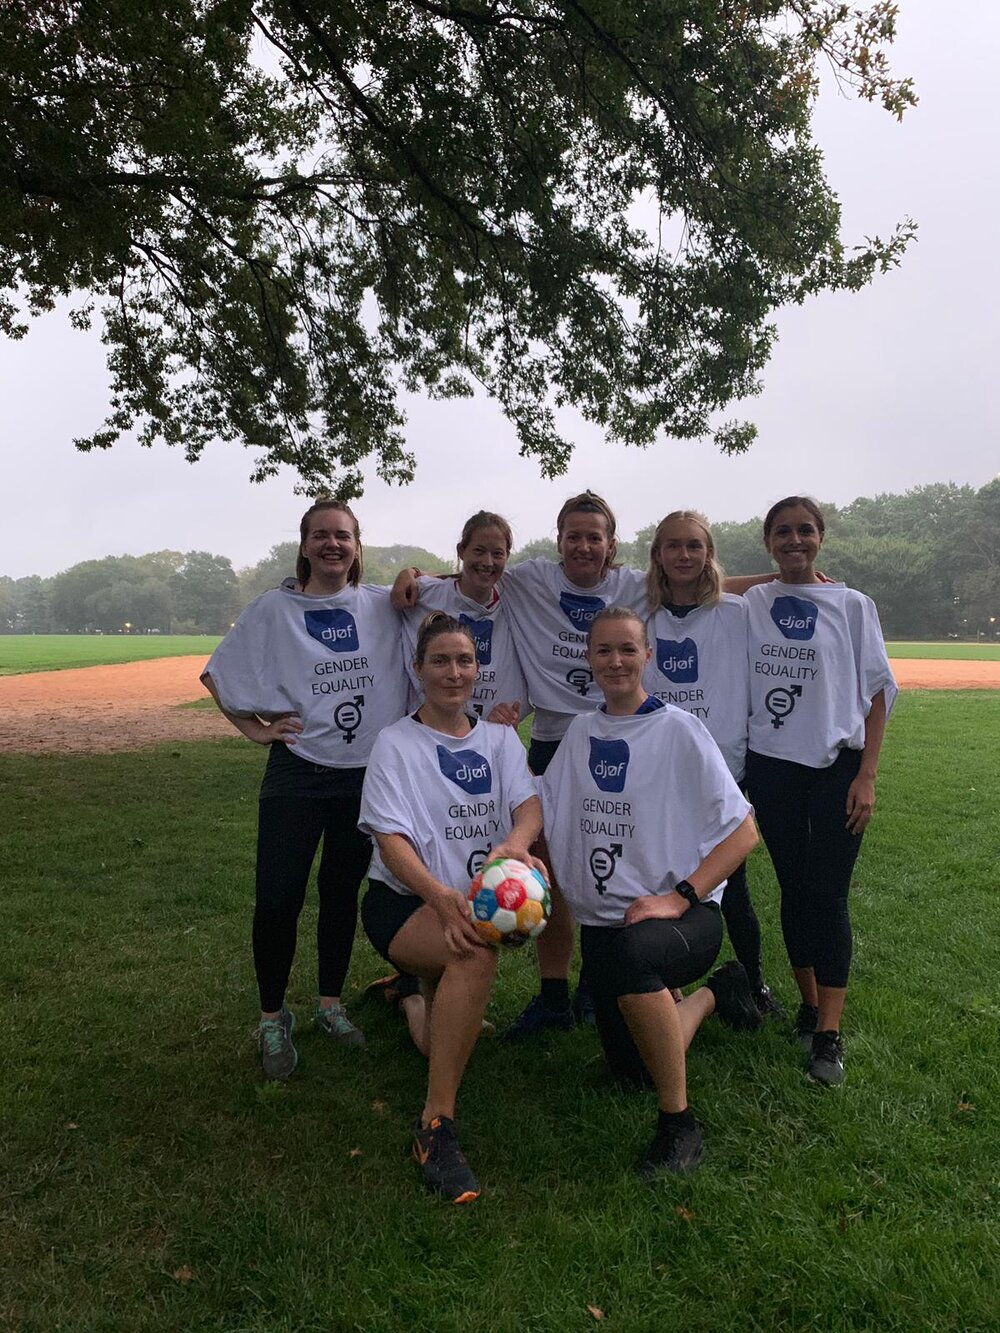 GGWCup NYC 2019 Team Formation Action9.JPG